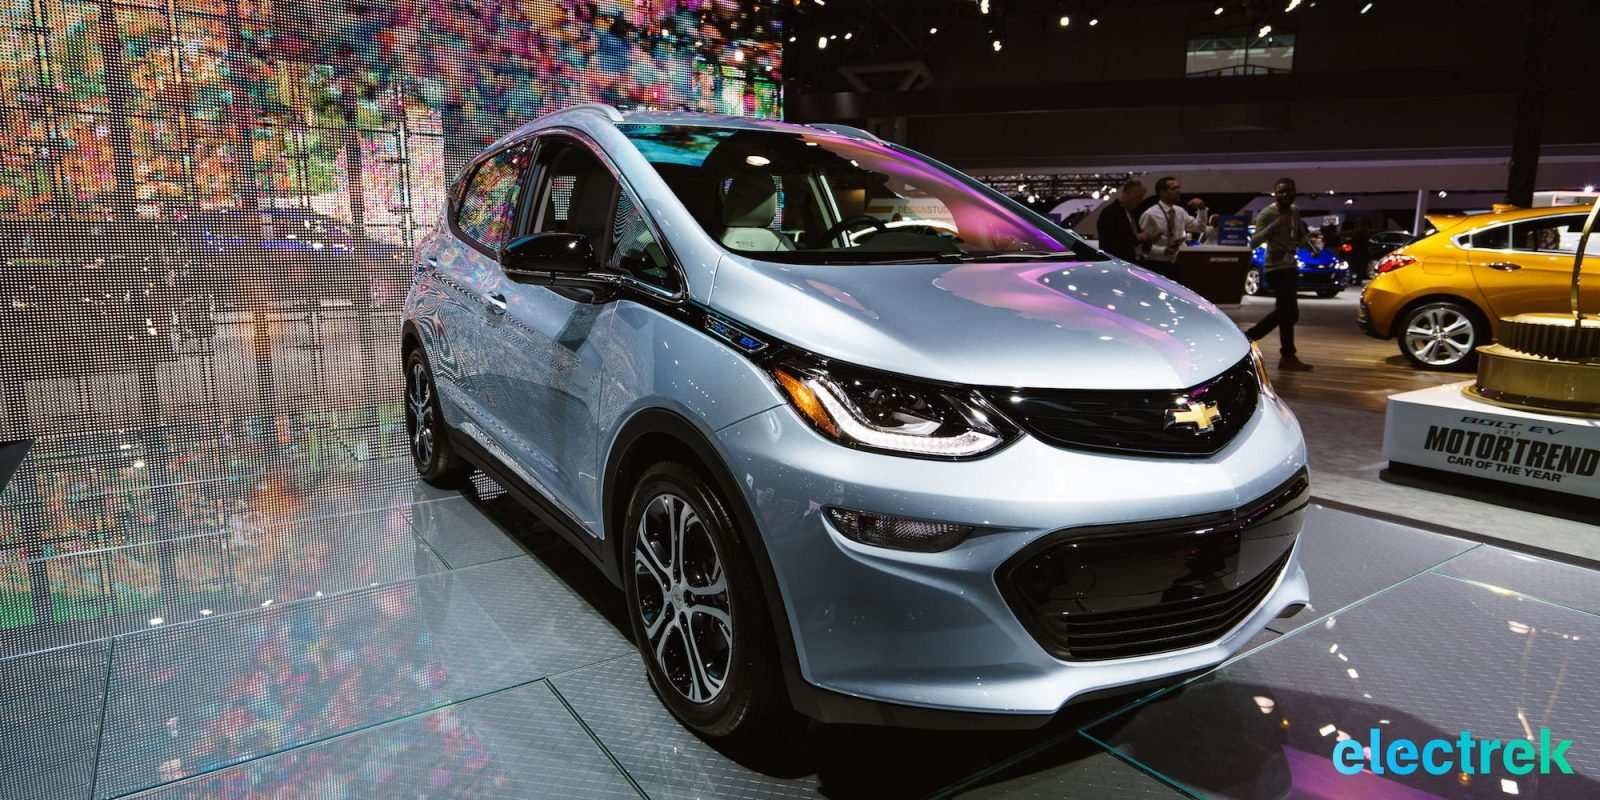 81 New 2019 Chevrolet Bolt Ev Performance and New Engine with 2019 Chevrolet Bolt Ev